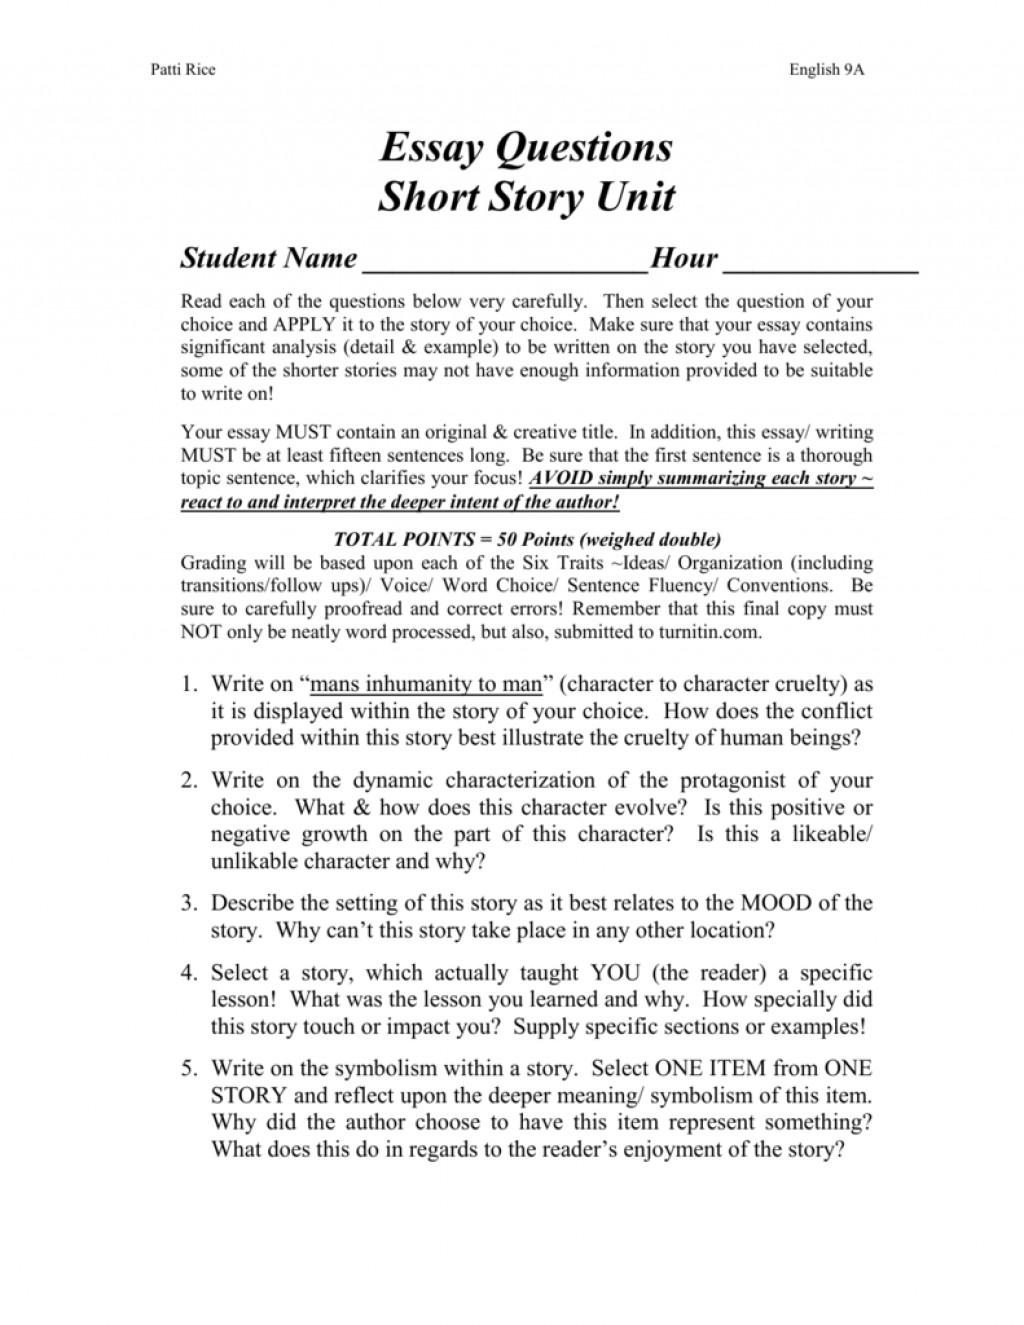 007 008001643 1 Short Stories In Essays Essay Impressive Fiction Analysis Examples Story Format Large